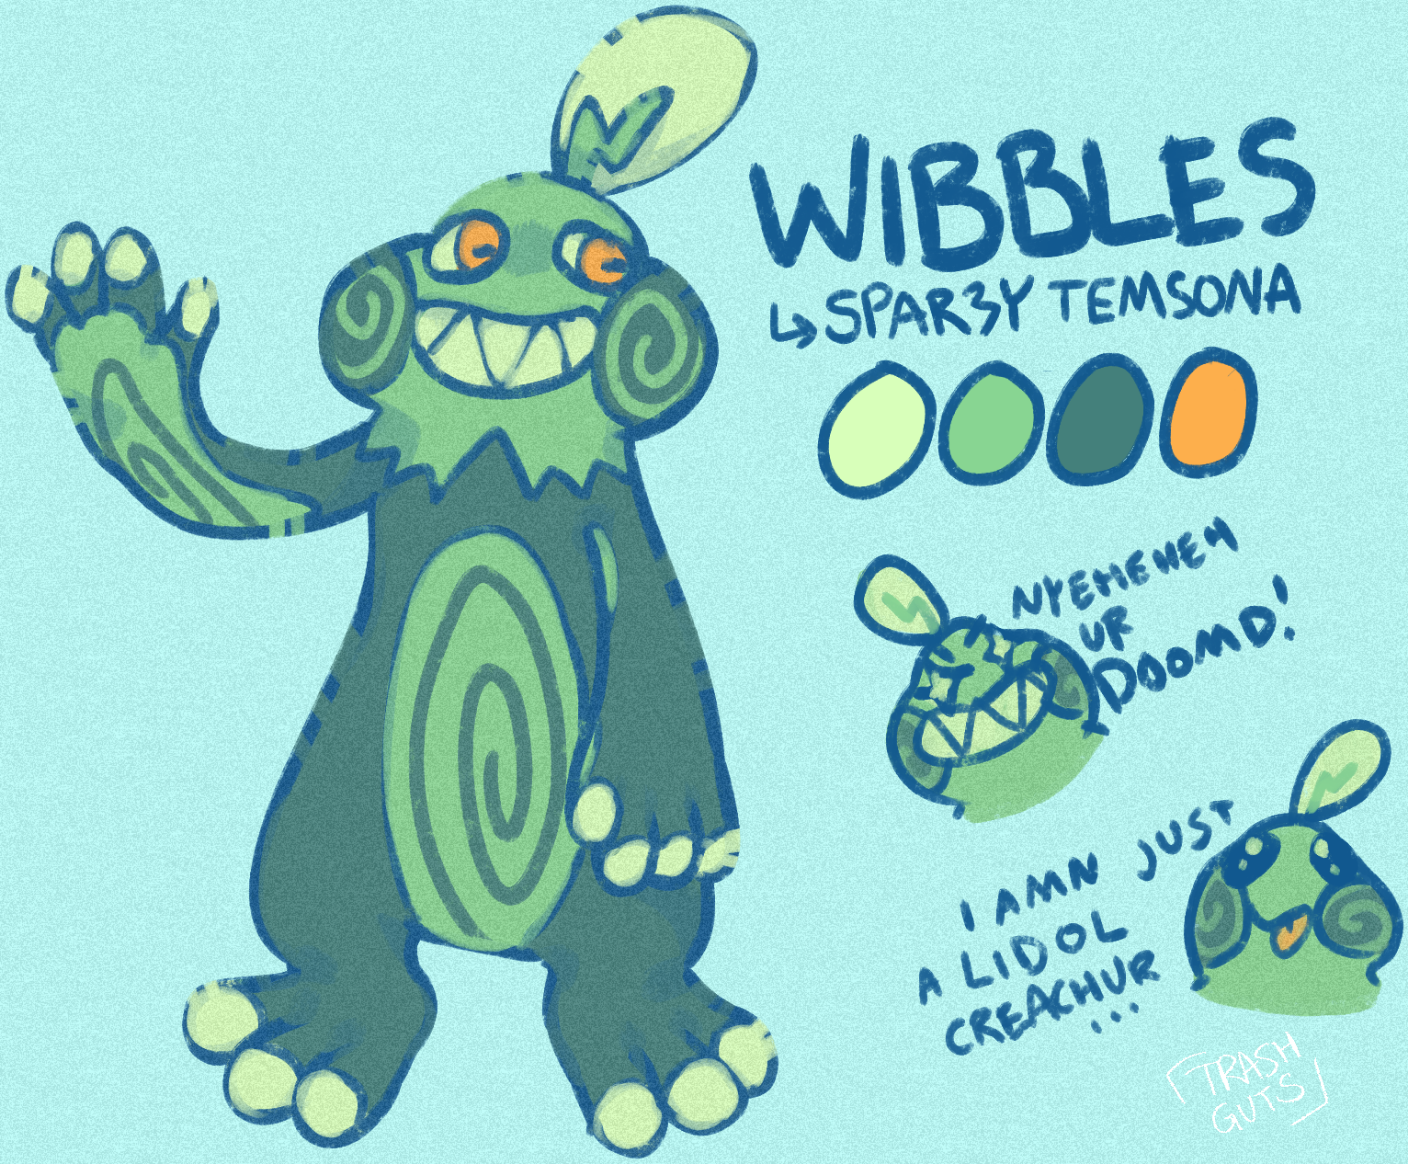 refsheet of a sparzy (a type of temtem) that is designed to resemble a frog